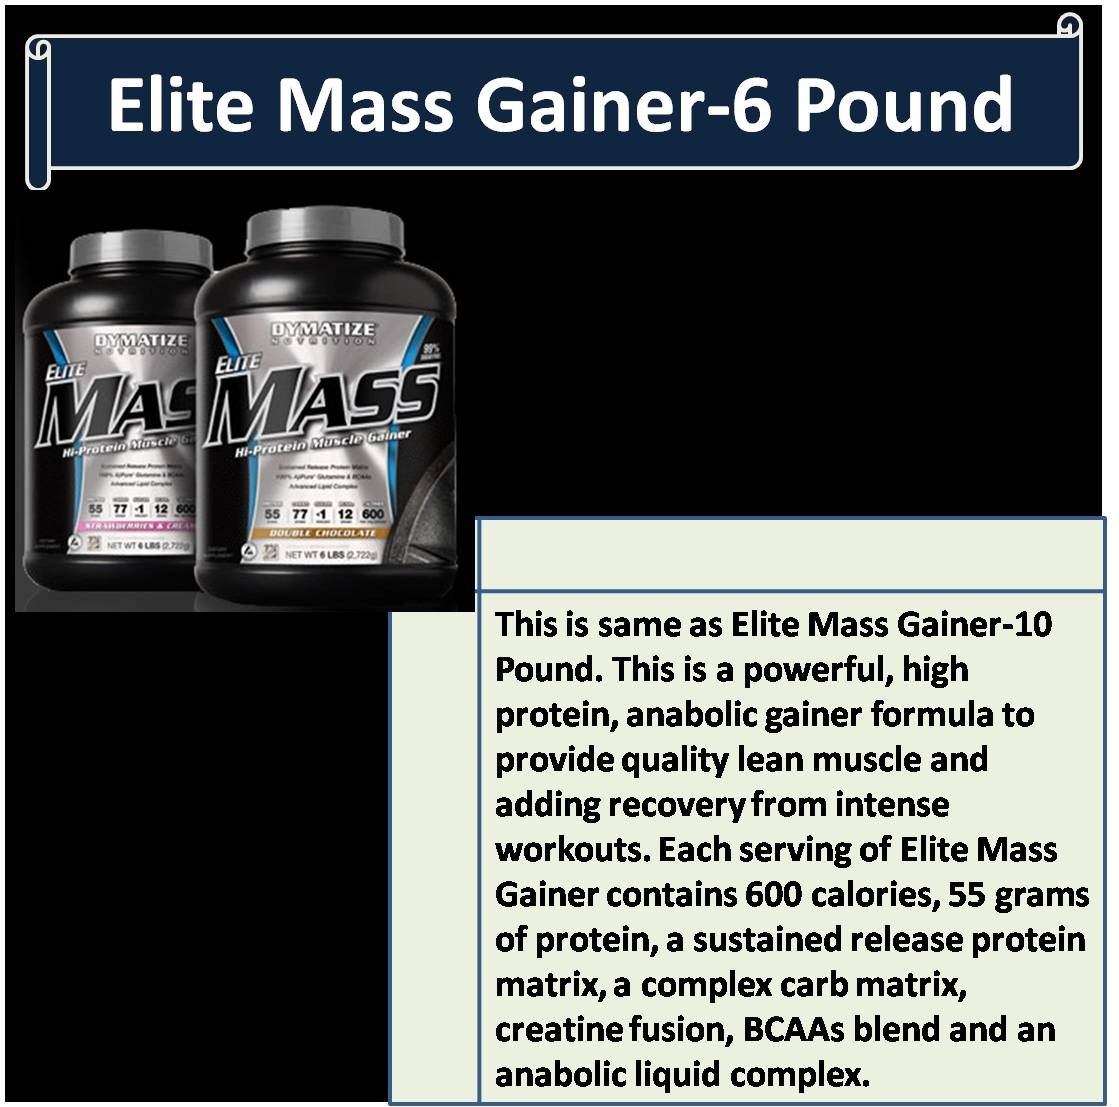 Elite Mass Gainer-6 Pound